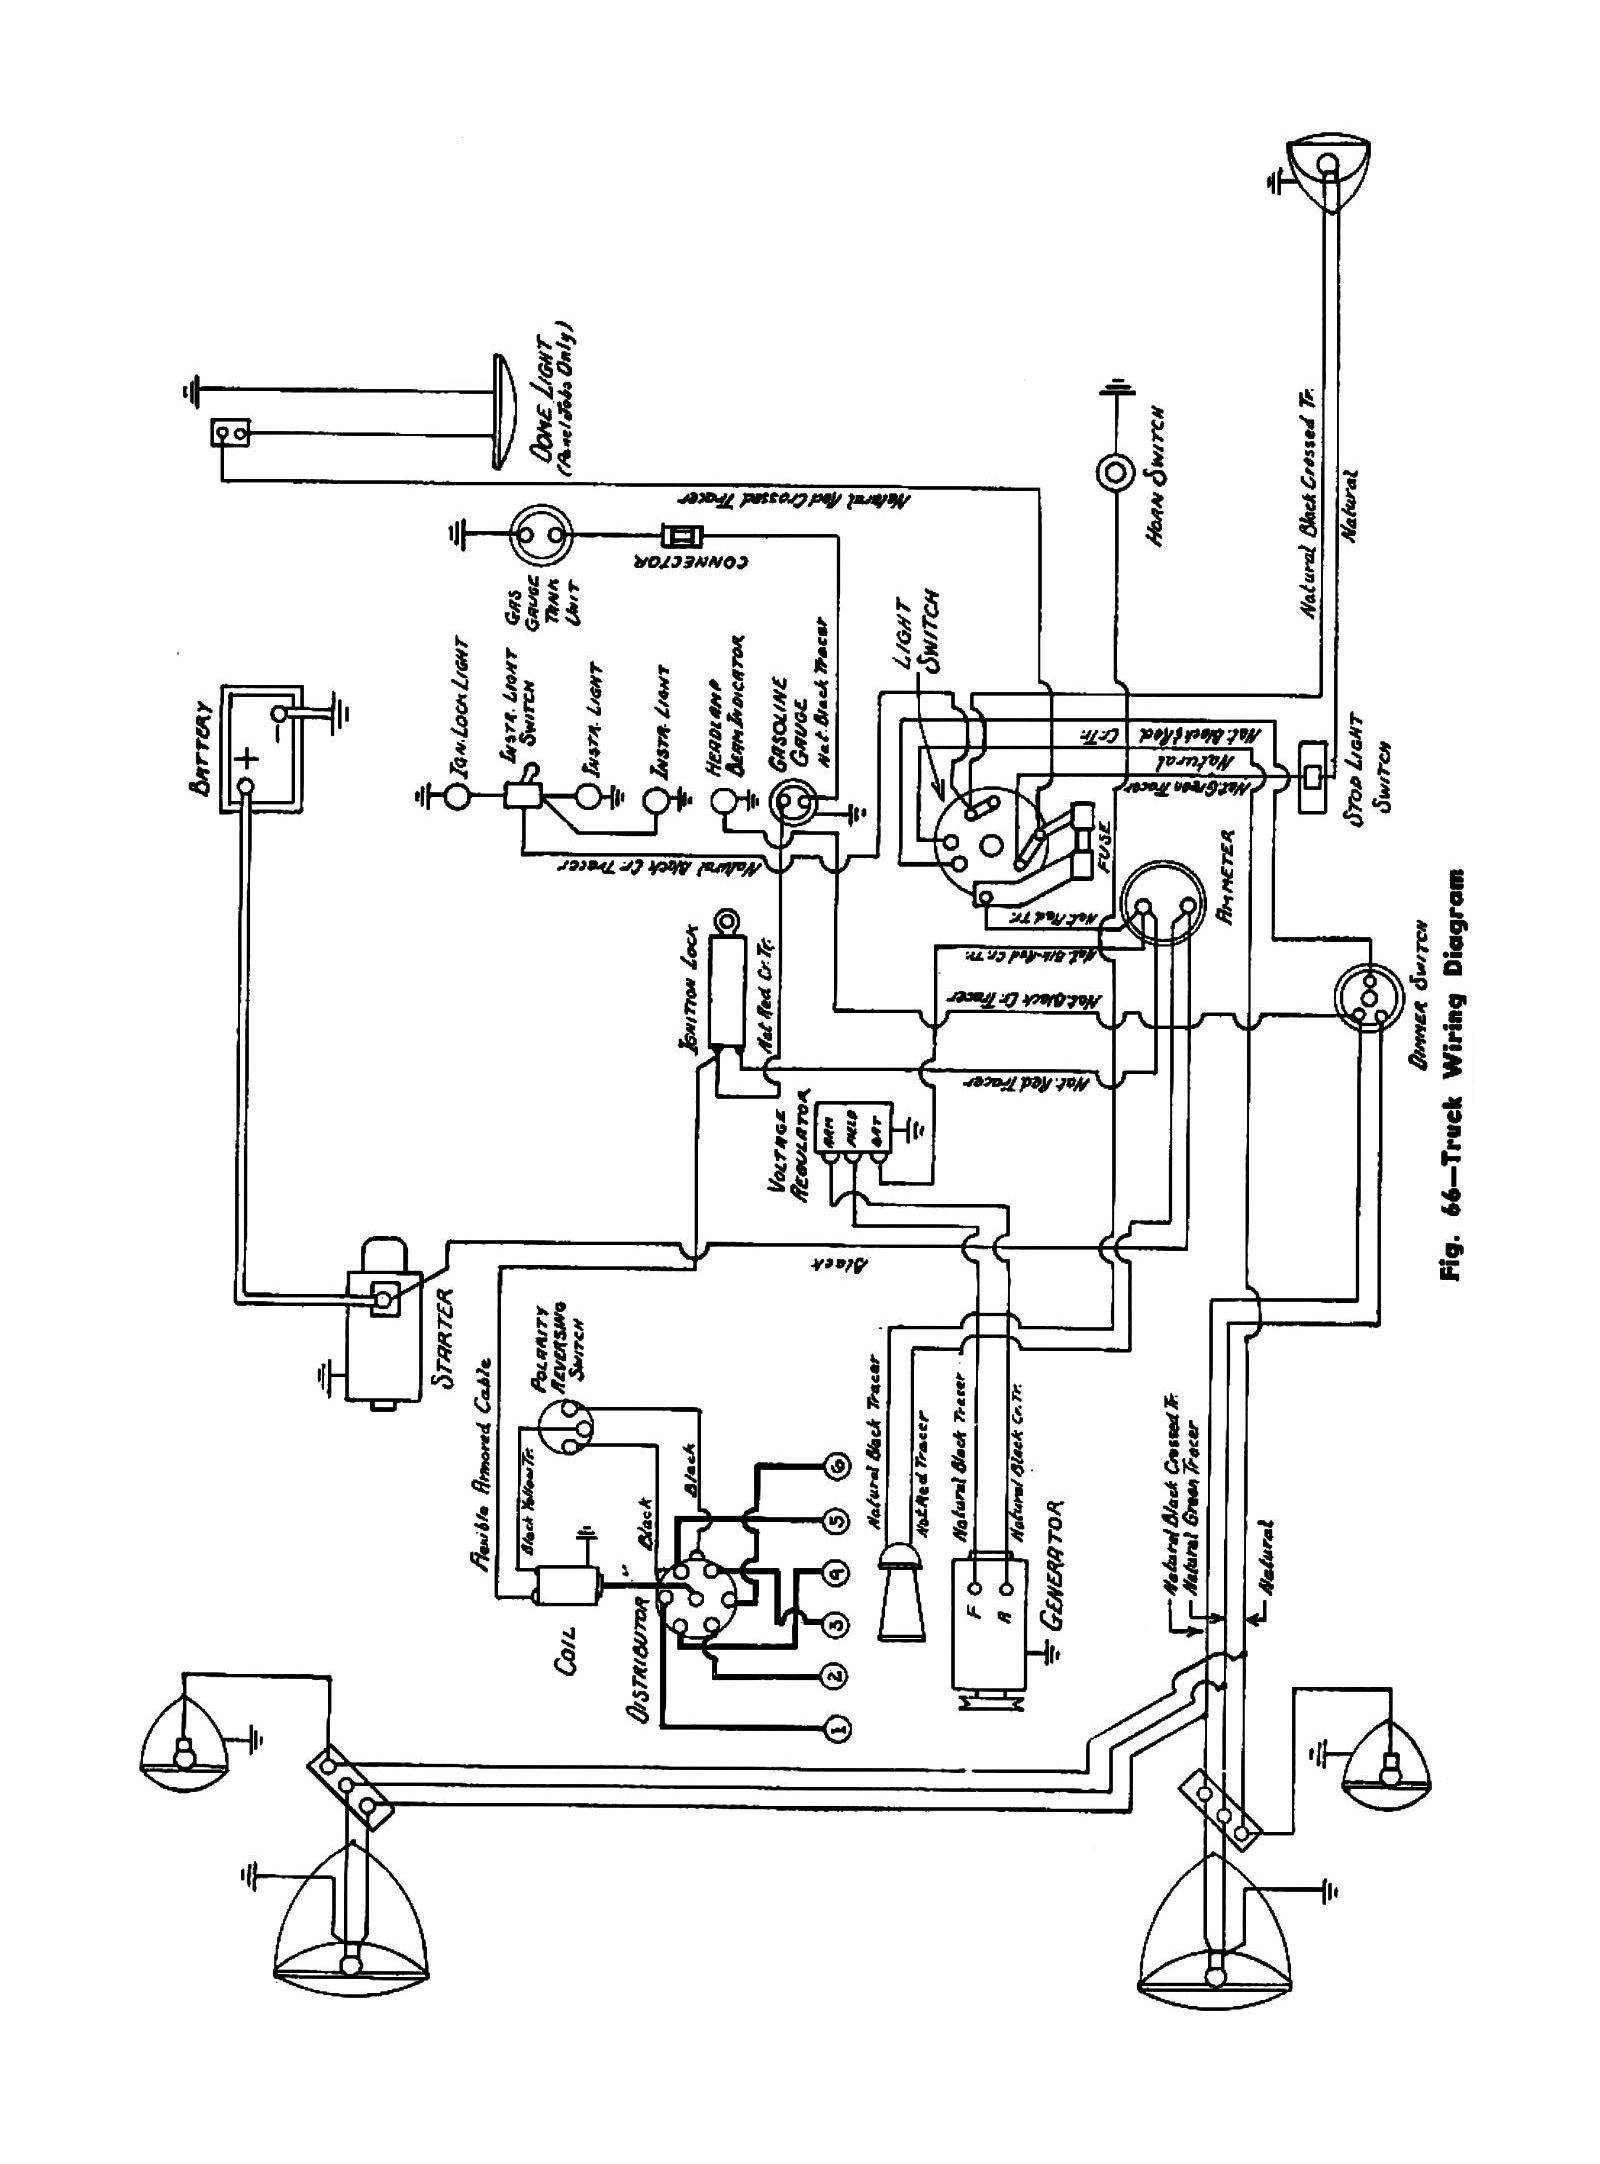 45truck chevy wiring diagrams 2005 chevy silverado wiring harness diagram at honlapkeszites.co